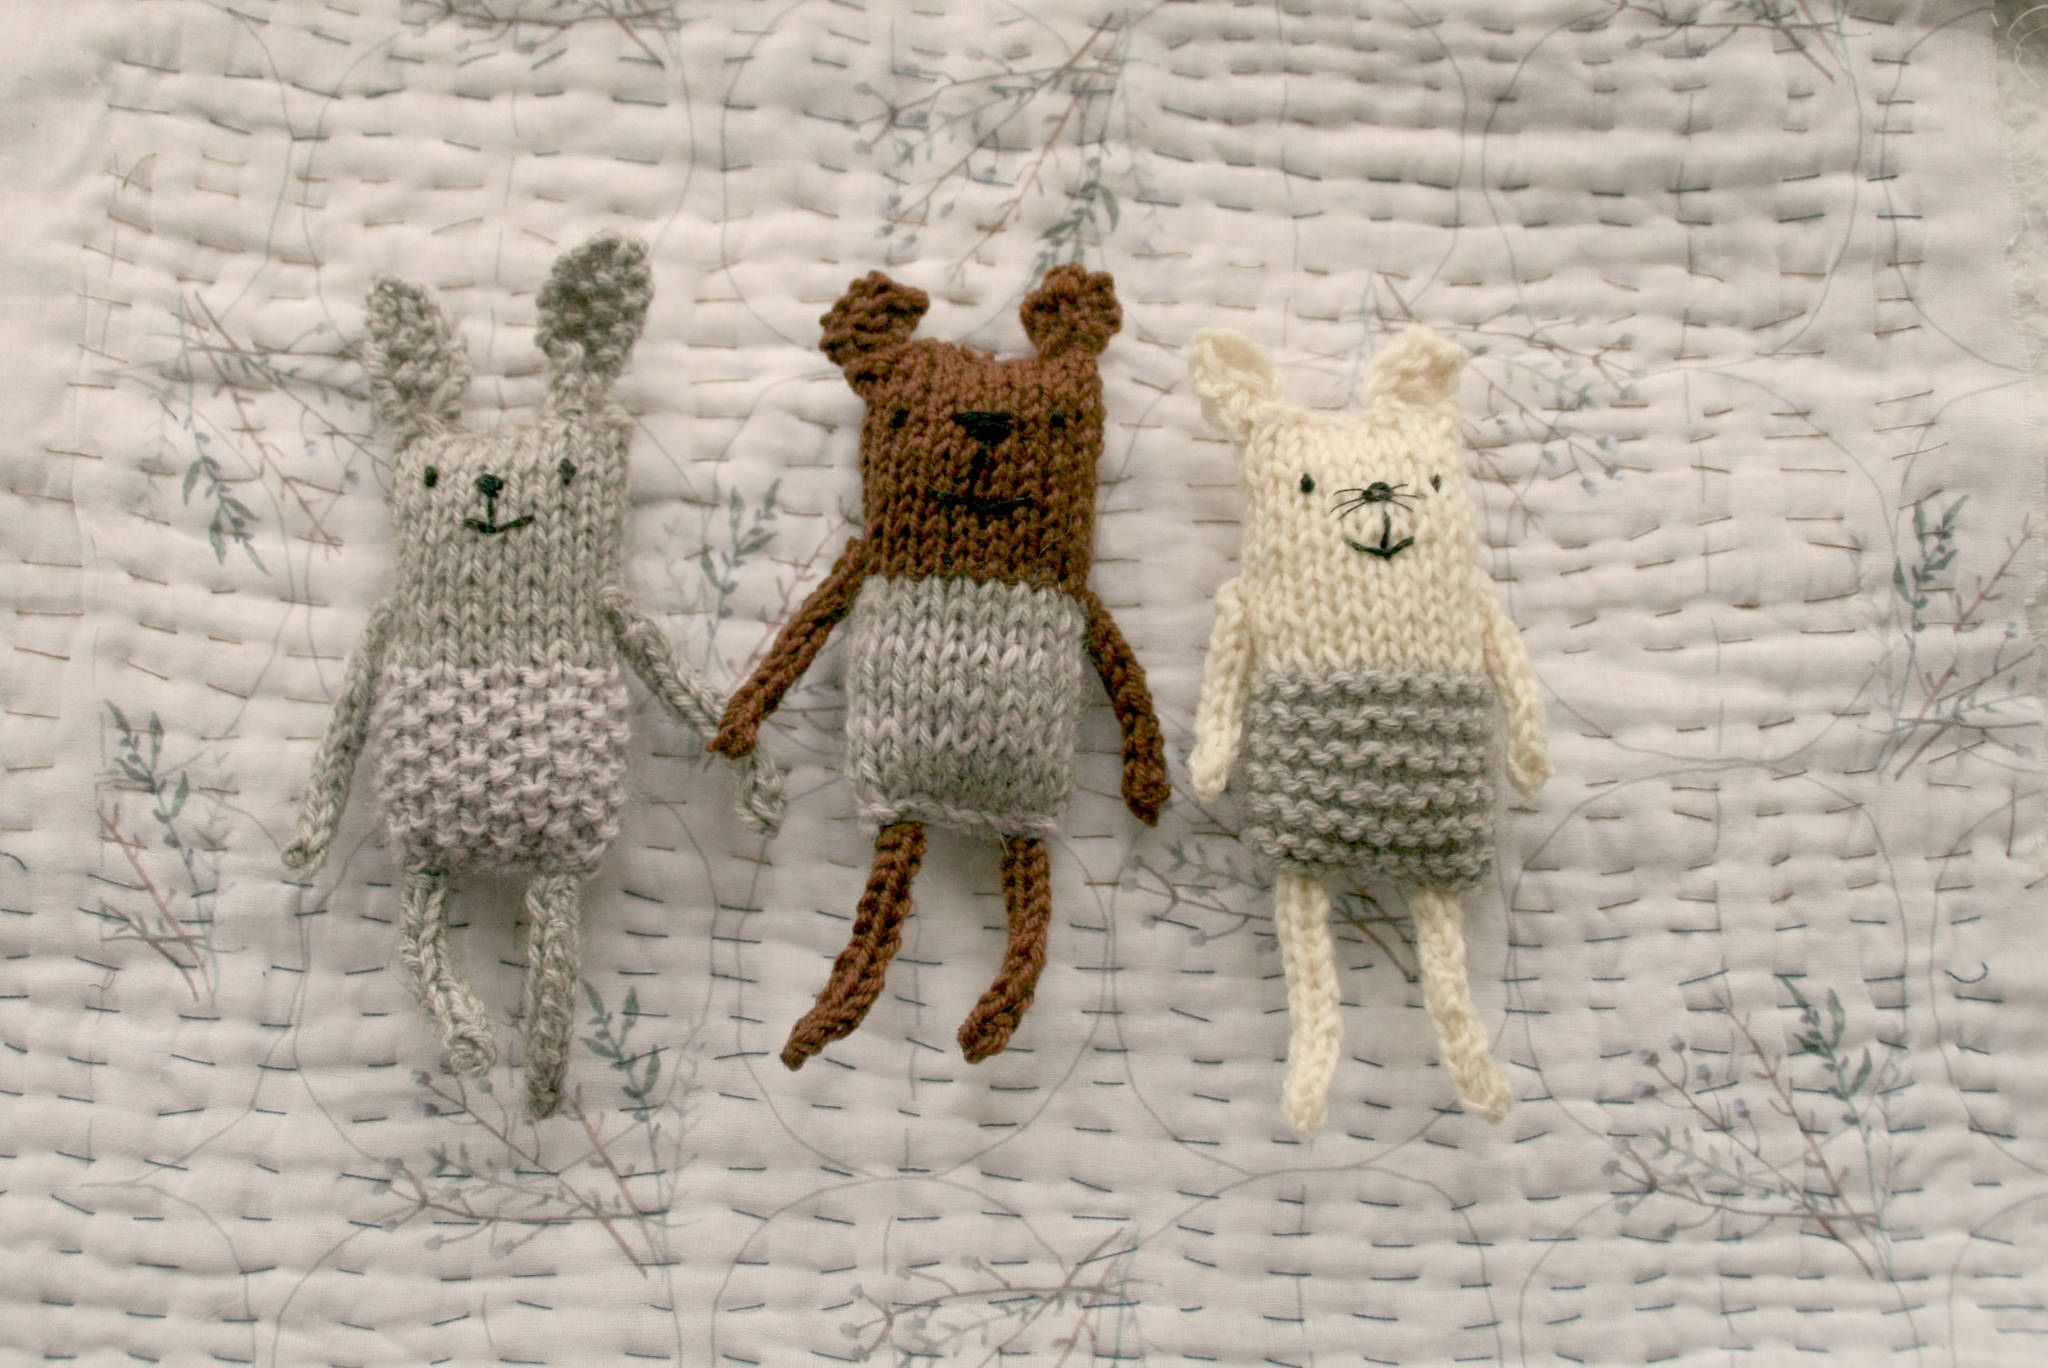 https://flic.kr/p/tBH5sL | anything animals | i made these for the little boy of a friend. fun and easy to make! tinyhappy.typepad.com/tiny_happy/2015/05/anything-animals...